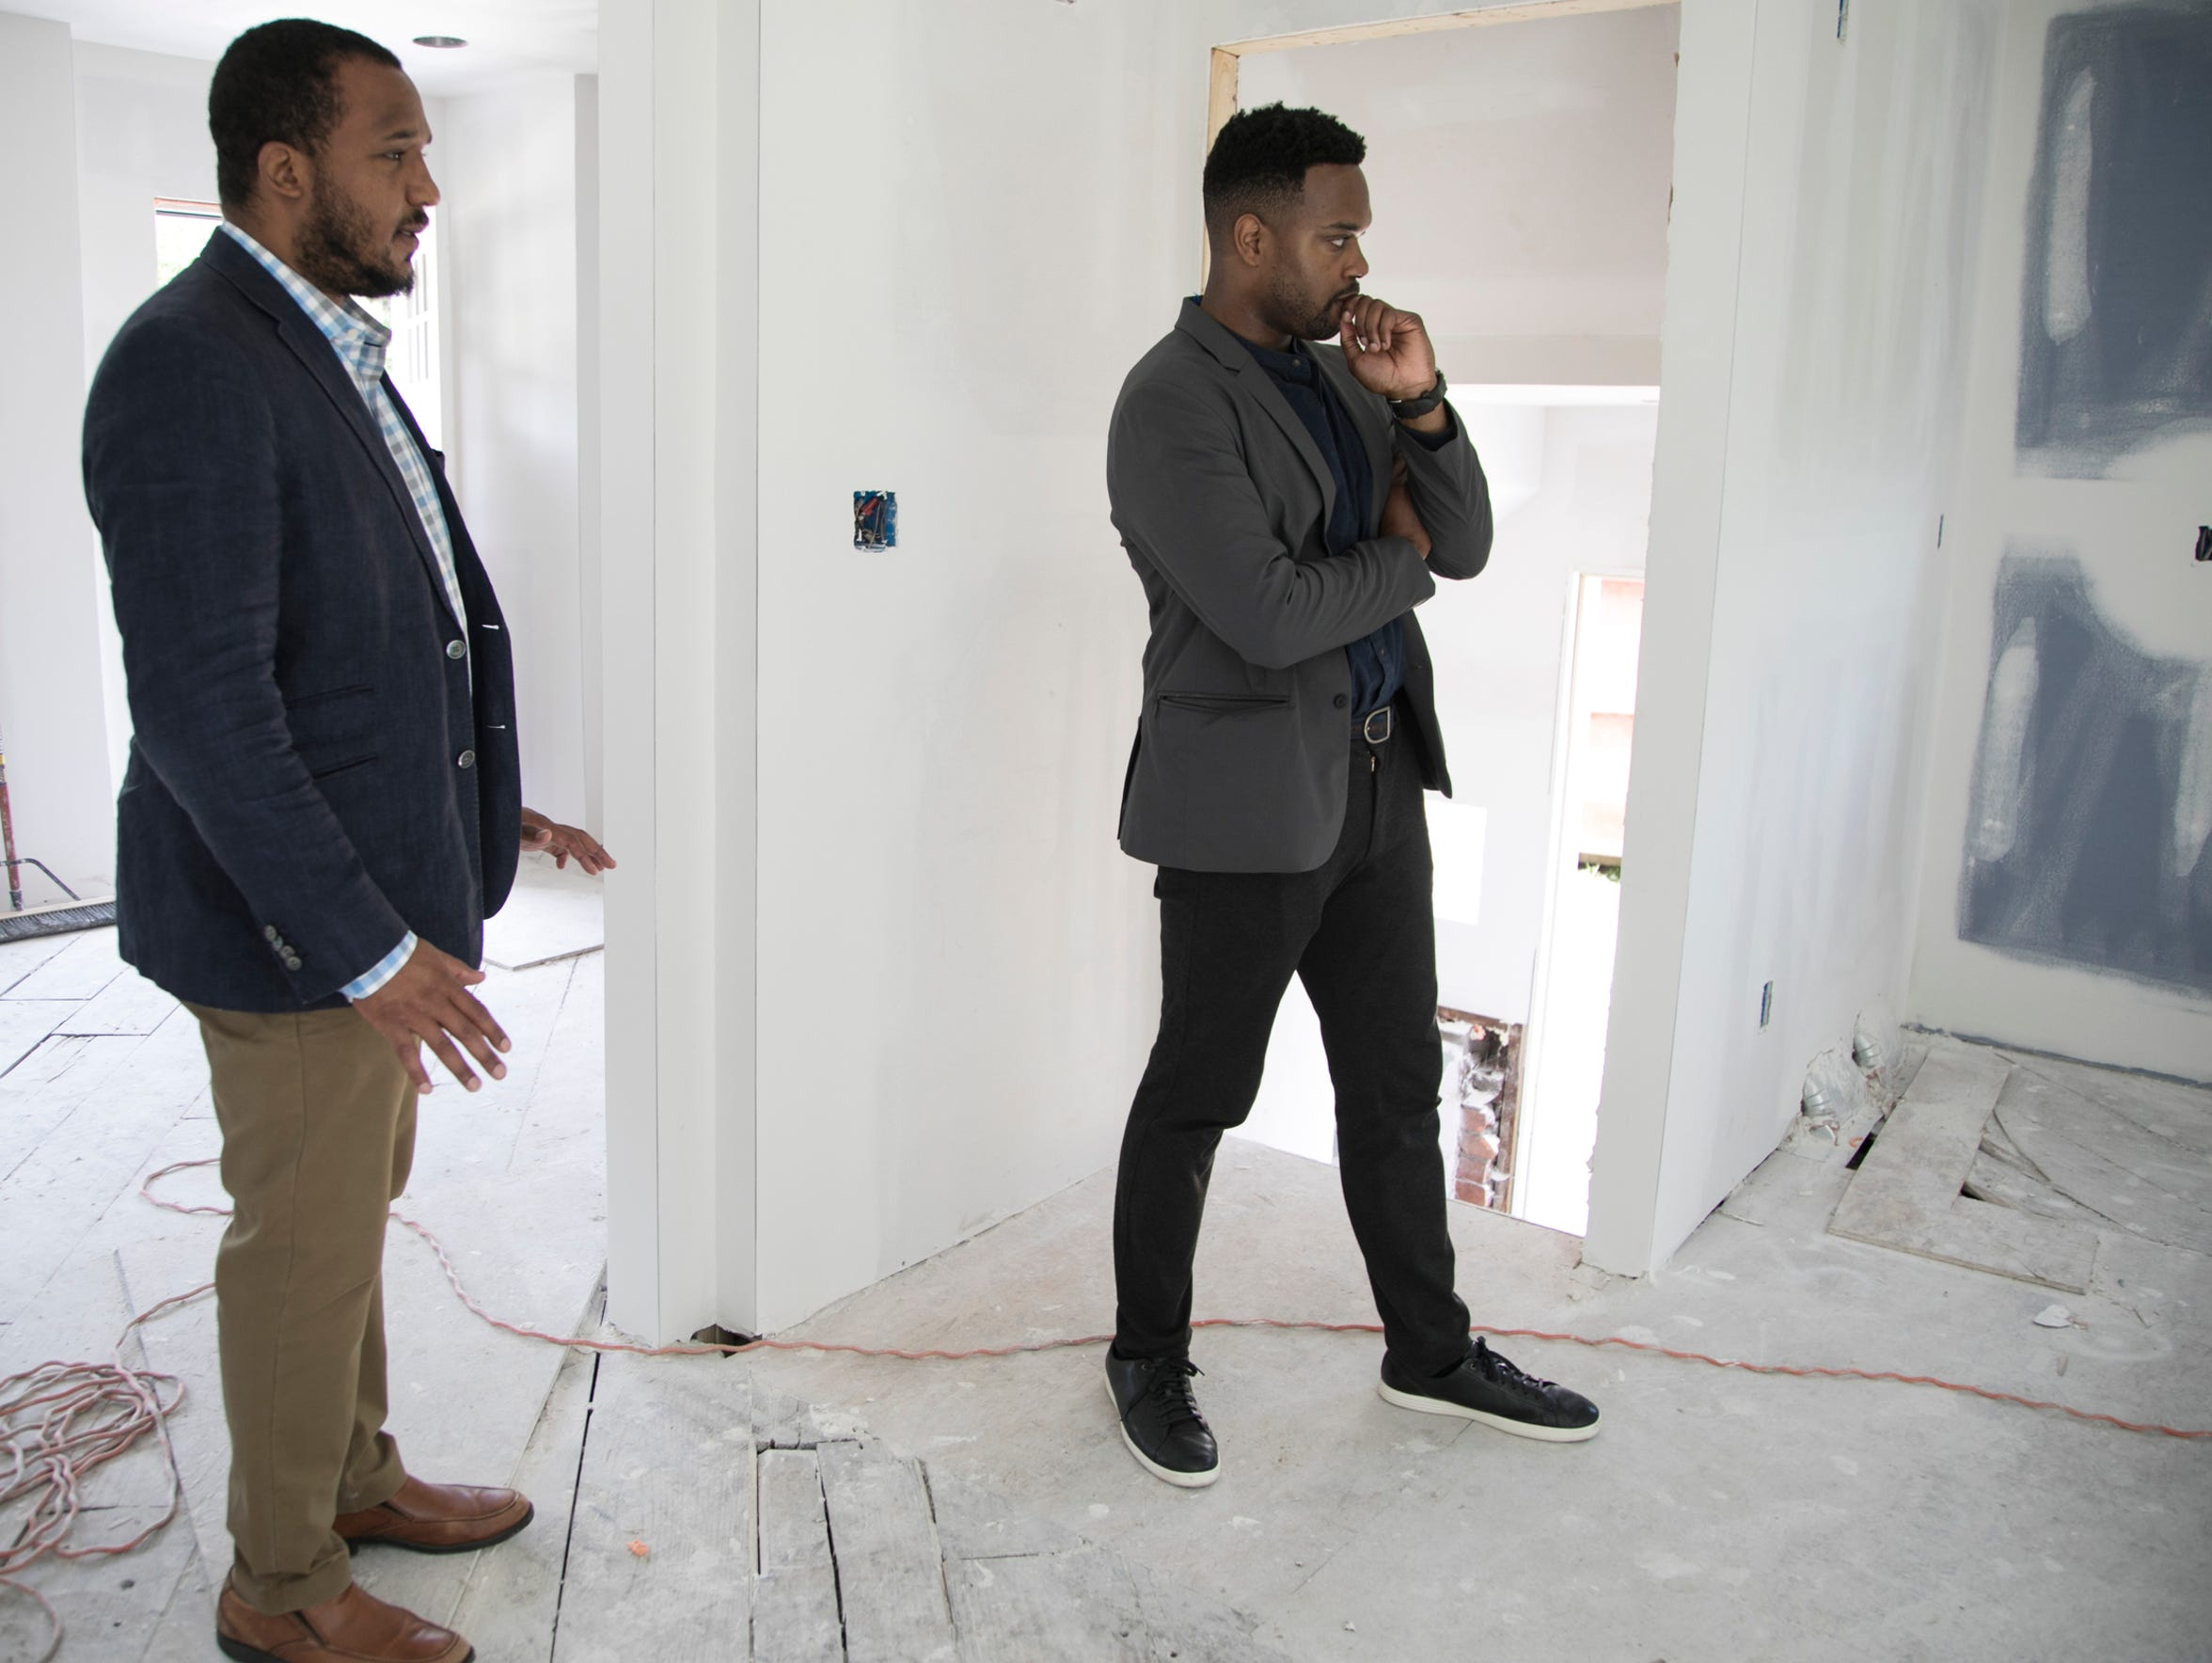 Century Partners co-founders Andrew Colom, left, and David Alade, check out one of the homes under construction in the Fitzgerald neighborhood in June on Lilac Street. The house will be the first home fully rehabbed as part of the revitalization project. Century Partners is supposed to rehab about 100 homes in the neighborhood by December 2020.